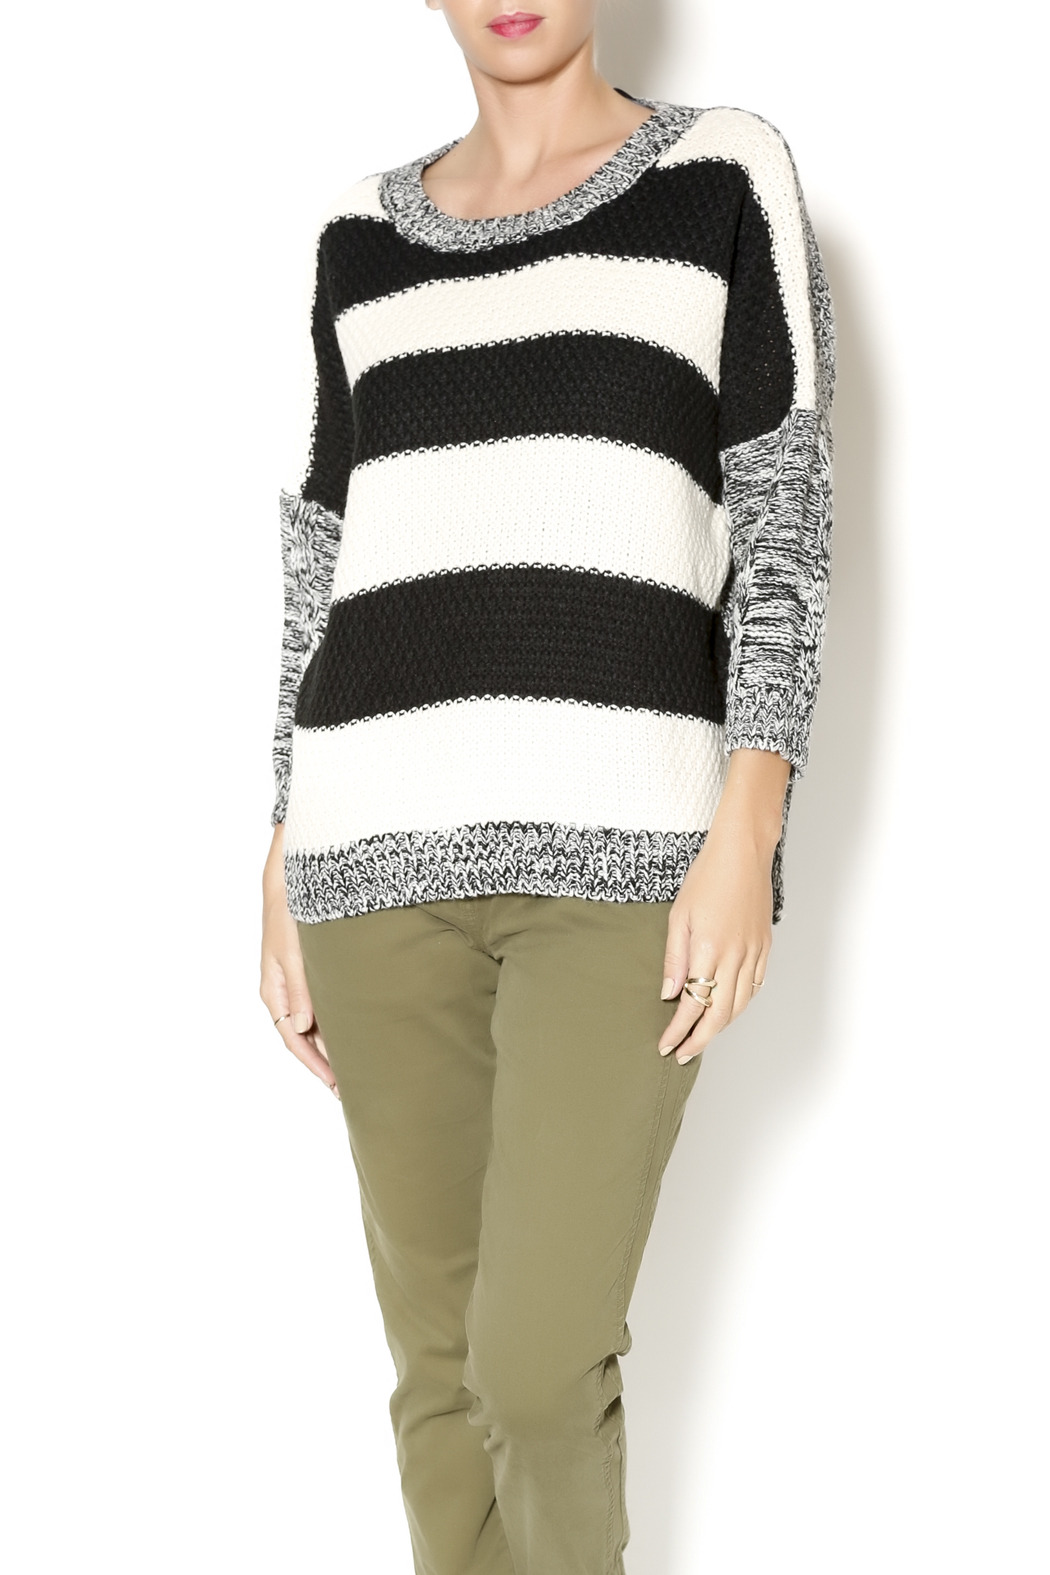 a0f2cfdec39 Honey Punch Striped Heather Sweater from New York by Dor L Dor ...